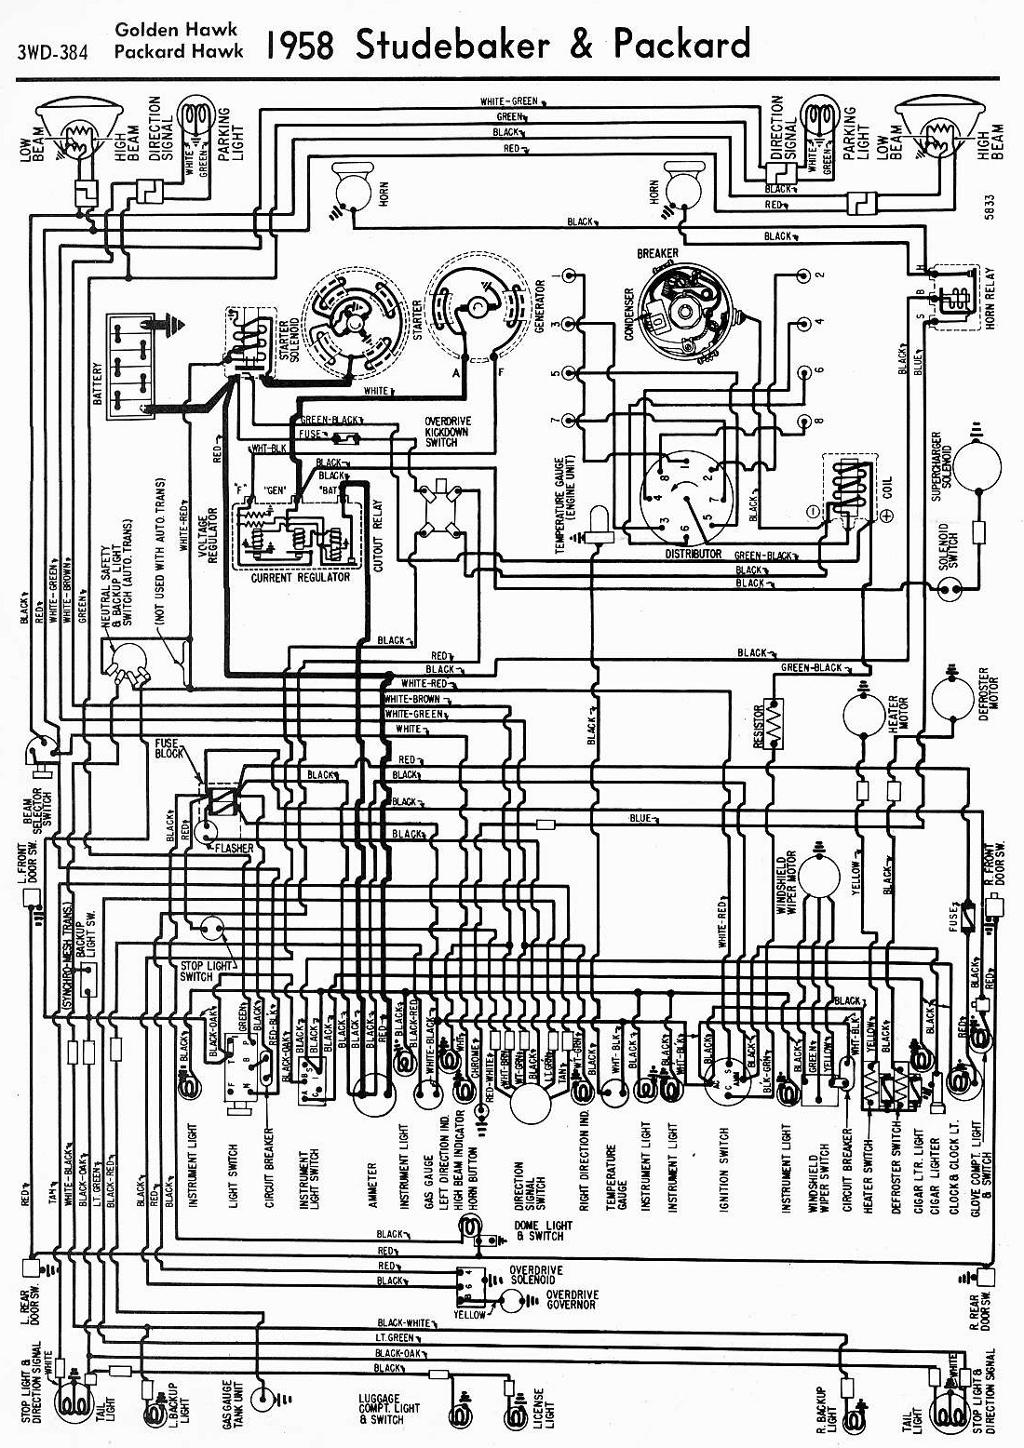 Opel Wiring Diagrams Trusted Manta Gte Diagram 1958 Circuit U2022 Whirlpool Refrigerator